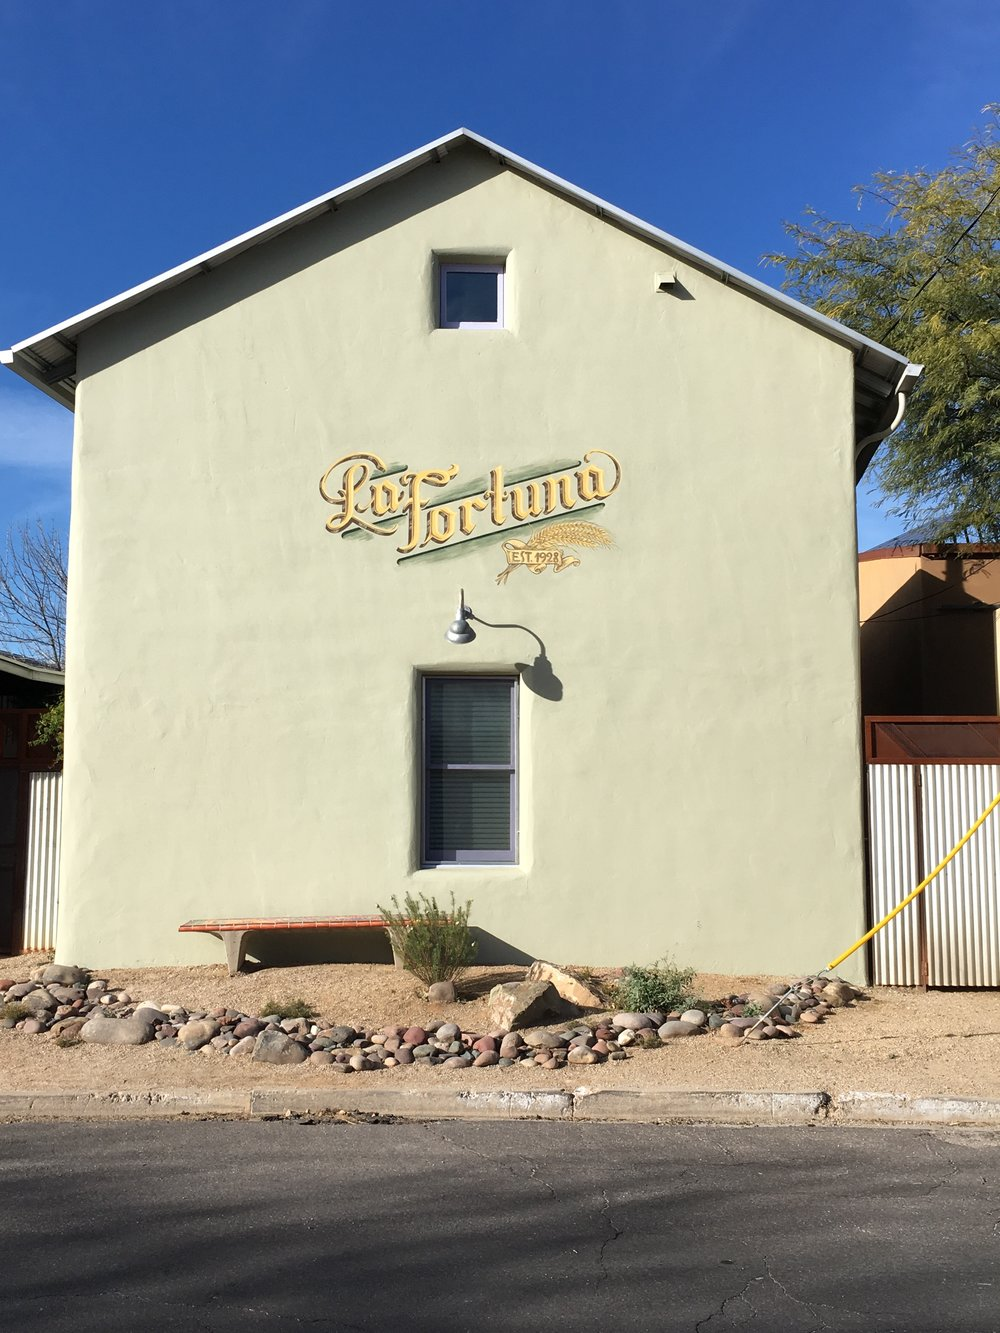 La Fortuna was at 638 S. Meyer in the early 1900s. This is not the original building (the current structure was built within the past 20 years), but I love that the owners are honoring the past. The best story about La Fortuna appeared in the Tucson Citizen in 2006. It was written by freelance writer Carmen Villa Prezelski. She interviewed Tony Figueroa, the son of La Fortuna's founder, Luis Figueroa. She said the bakery made both French and Mexican bread, empanadas, coyotas and cochitos. Now that is Tucson style.  (Tony died in 2015 and his obituary, which mentioned  La Fortuna, was published in the Arizona Daily Star.)